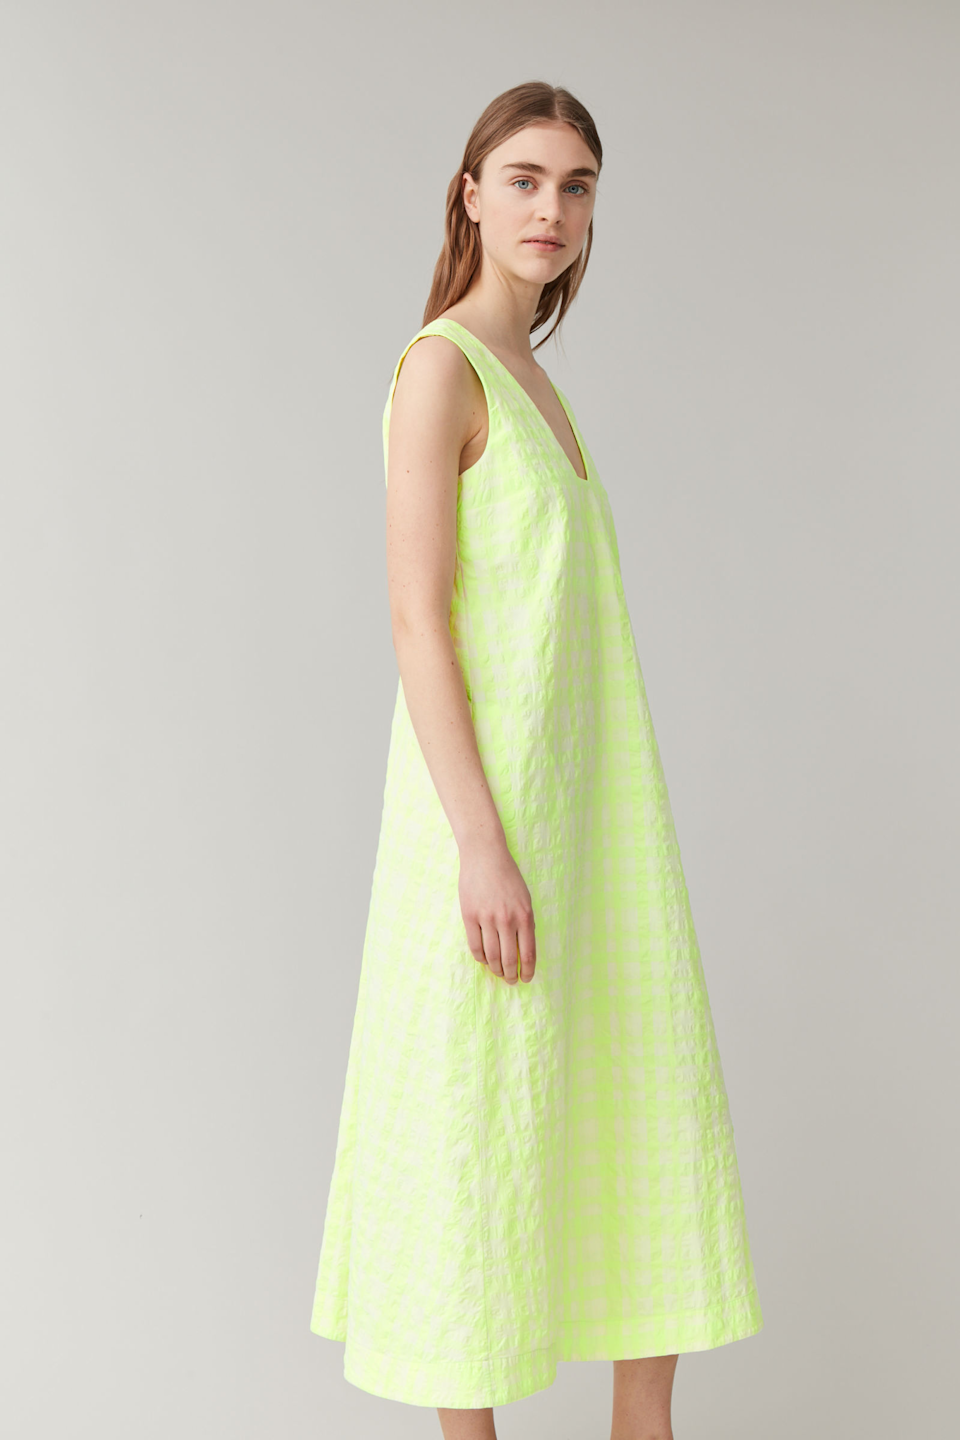 """<h2>Two Words: House Dresses</h2> <br>When in the comfort of your own home, you might be tempted to just wear leggings and a baggy T-shirt, or a matching sweatsuit. May we suggest turning to house dresses next time? Flowy and lightweight, these frocks feel like you're wearing nothing at all.<br><br><strong>COS</strong> Lyocell-Linen Long Seersucker Checked Dress, $, available at <a href=""""https://go.skimresources.com/?id=30283X879131&url=https%3A%2F%2Fwww.cosstores.com%2Fen_usd%2Fwomen%2Fwomenswear%2Fdresses%2Fproduct.lyocell-linen-long-seersucker-checked-dress-yellow.0888424001.html"""" rel=""""nofollow noopener"""" target=""""_blank"""" data-ylk=""""slk:COS"""" class=""""link rapid-noclick-resp"""">COS</a><br>"""